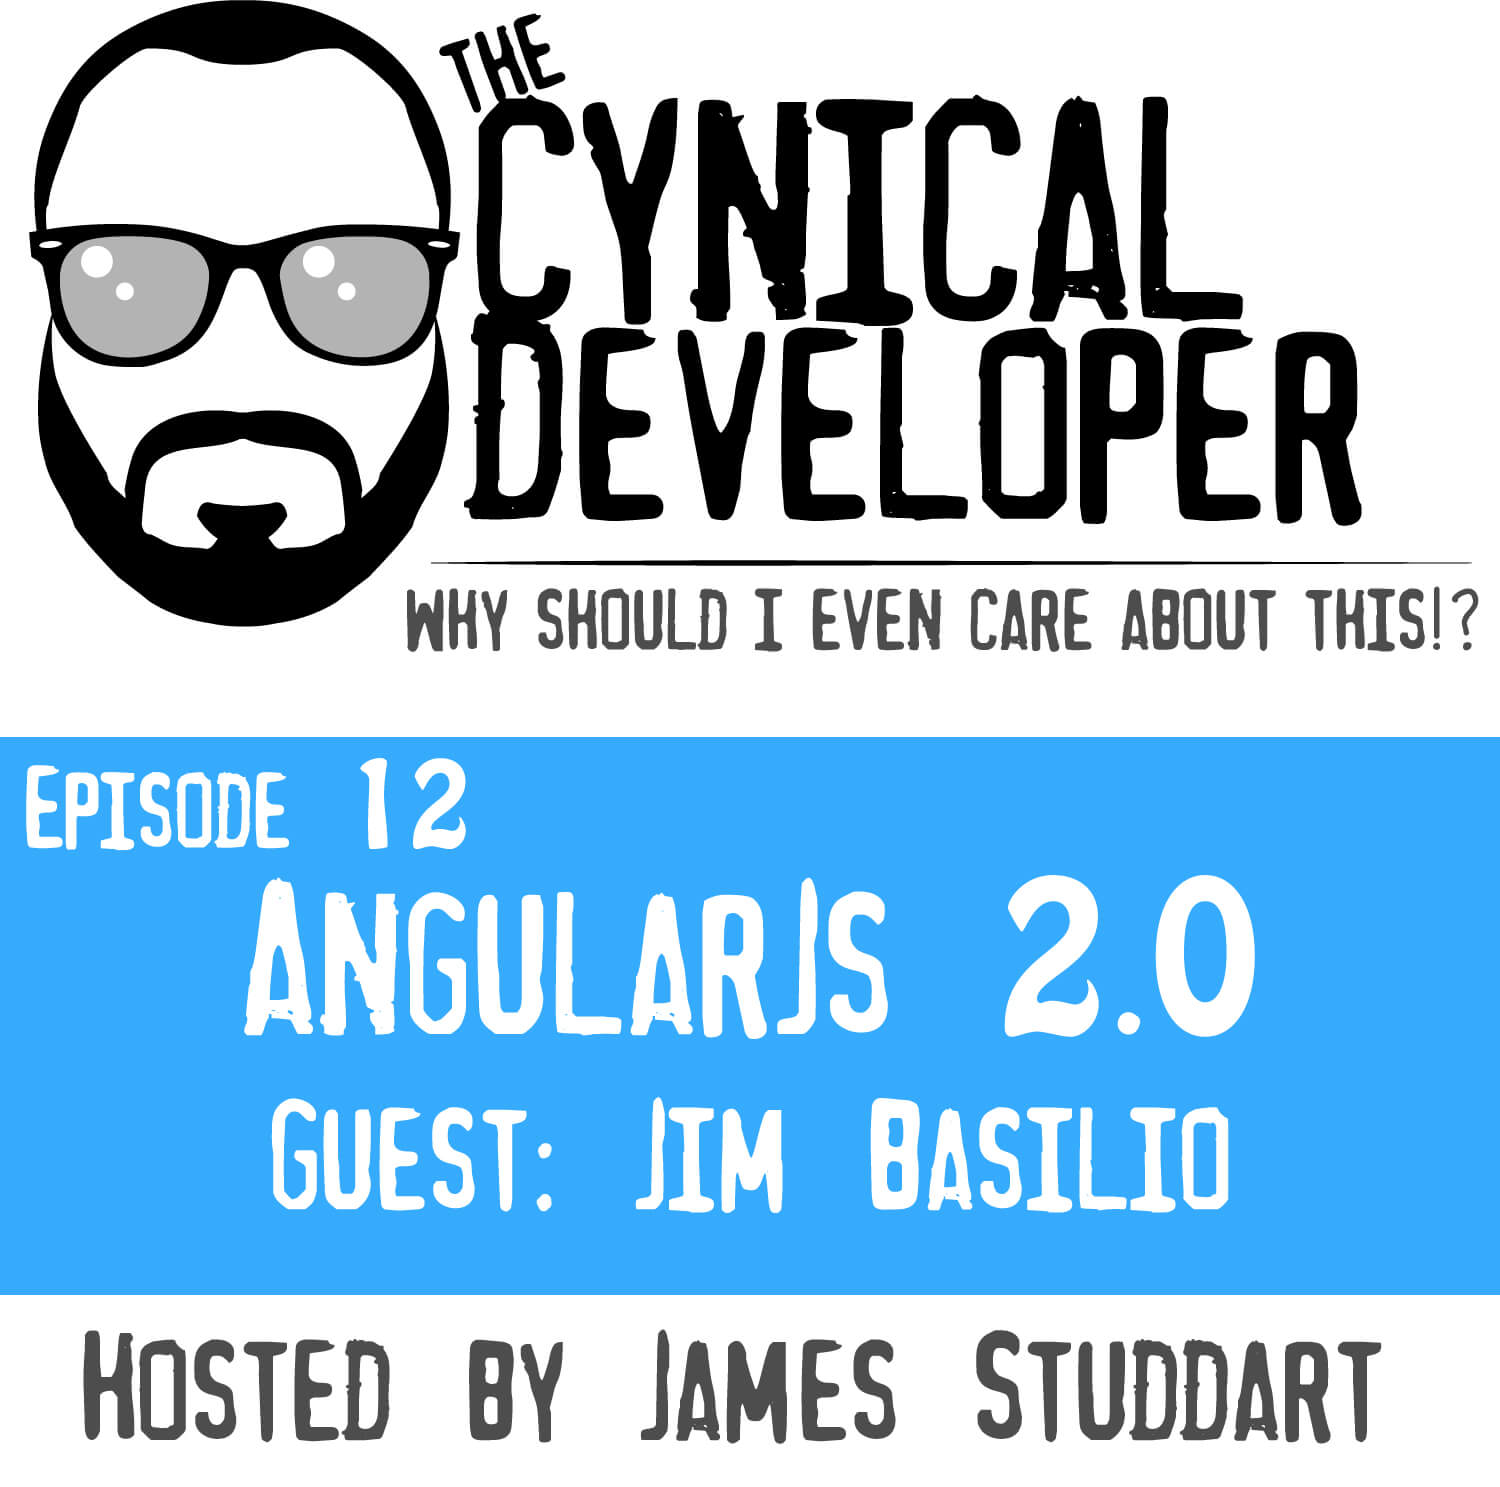 Episode 12 - AngularJs 2.0